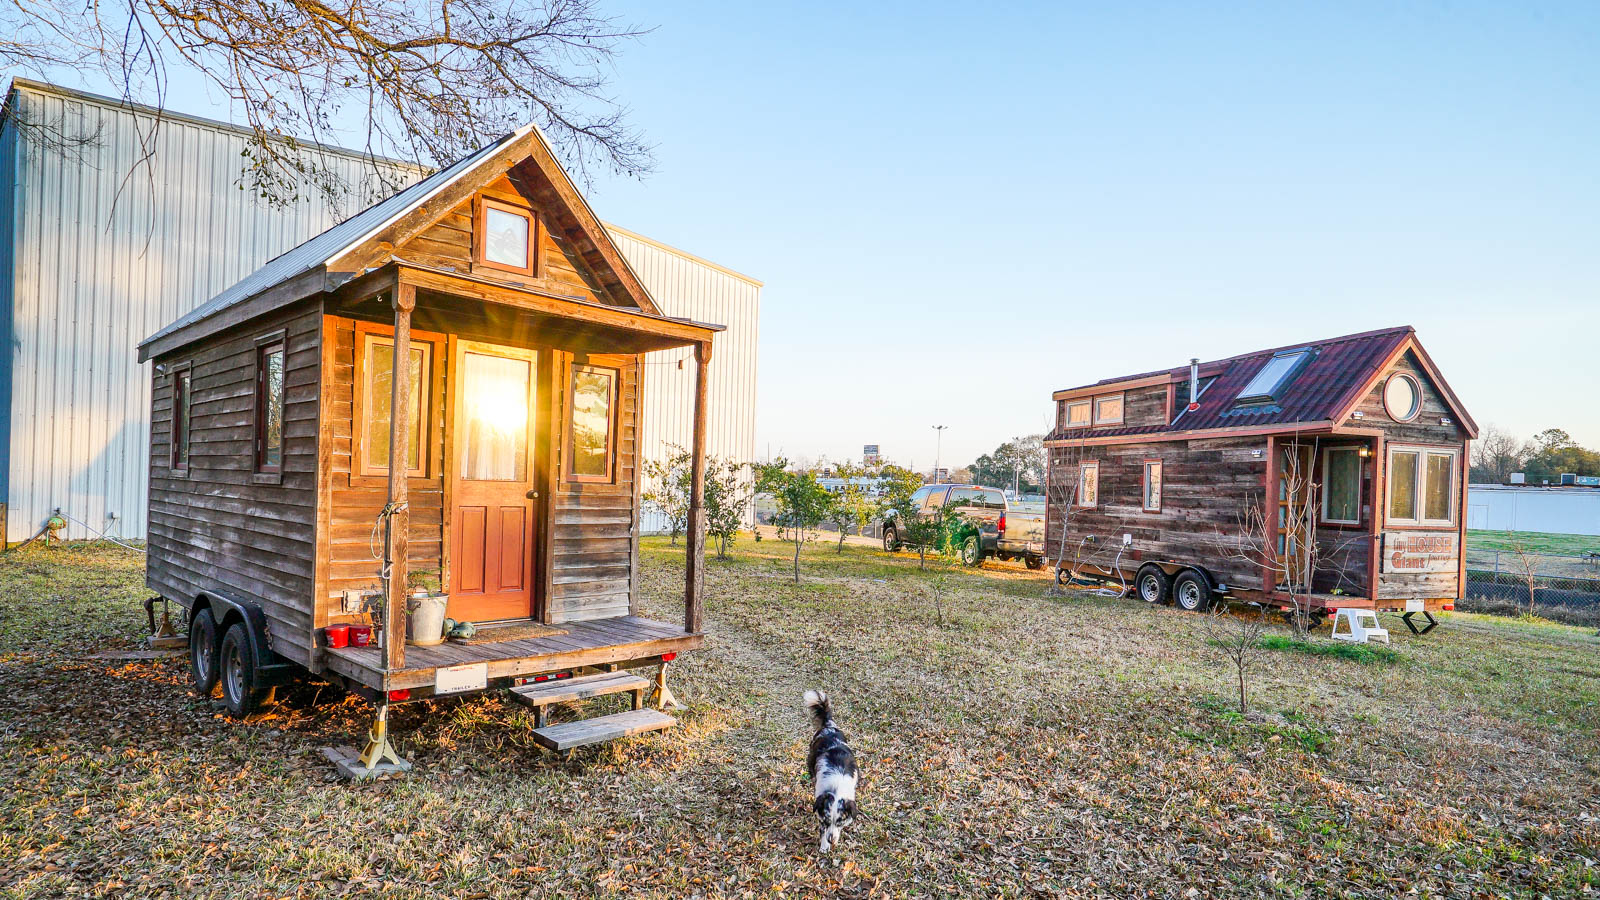 Art Cormier's Tiny House & Tiny House GJ